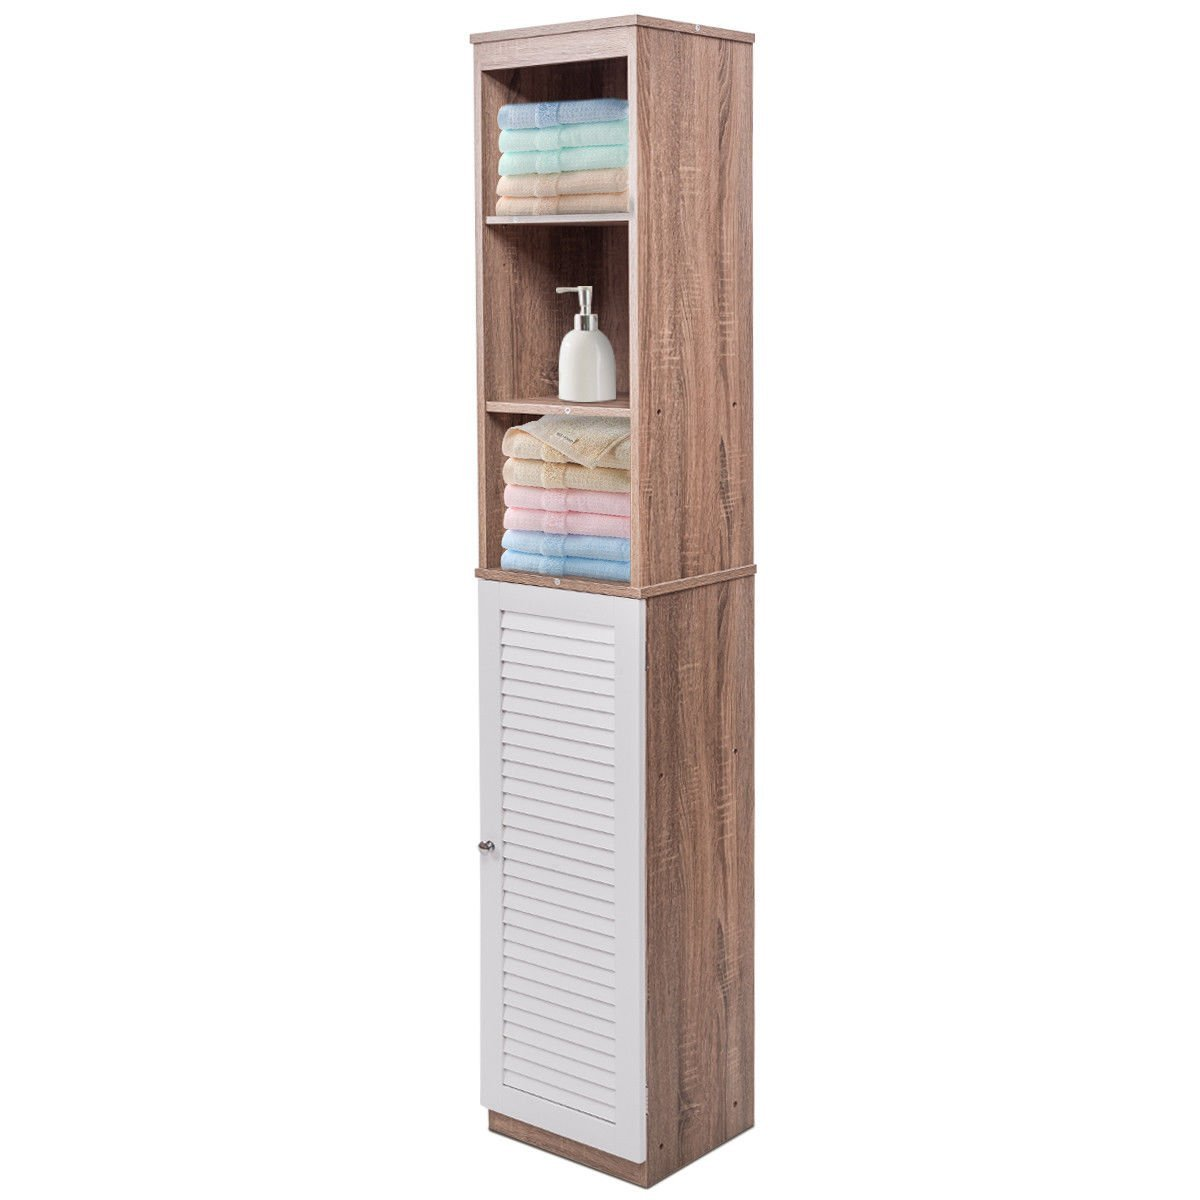 "Tower Bathroom Bedroom Shelf Organizer Storage Cabinet Louvered New 71"" Tall Wood"